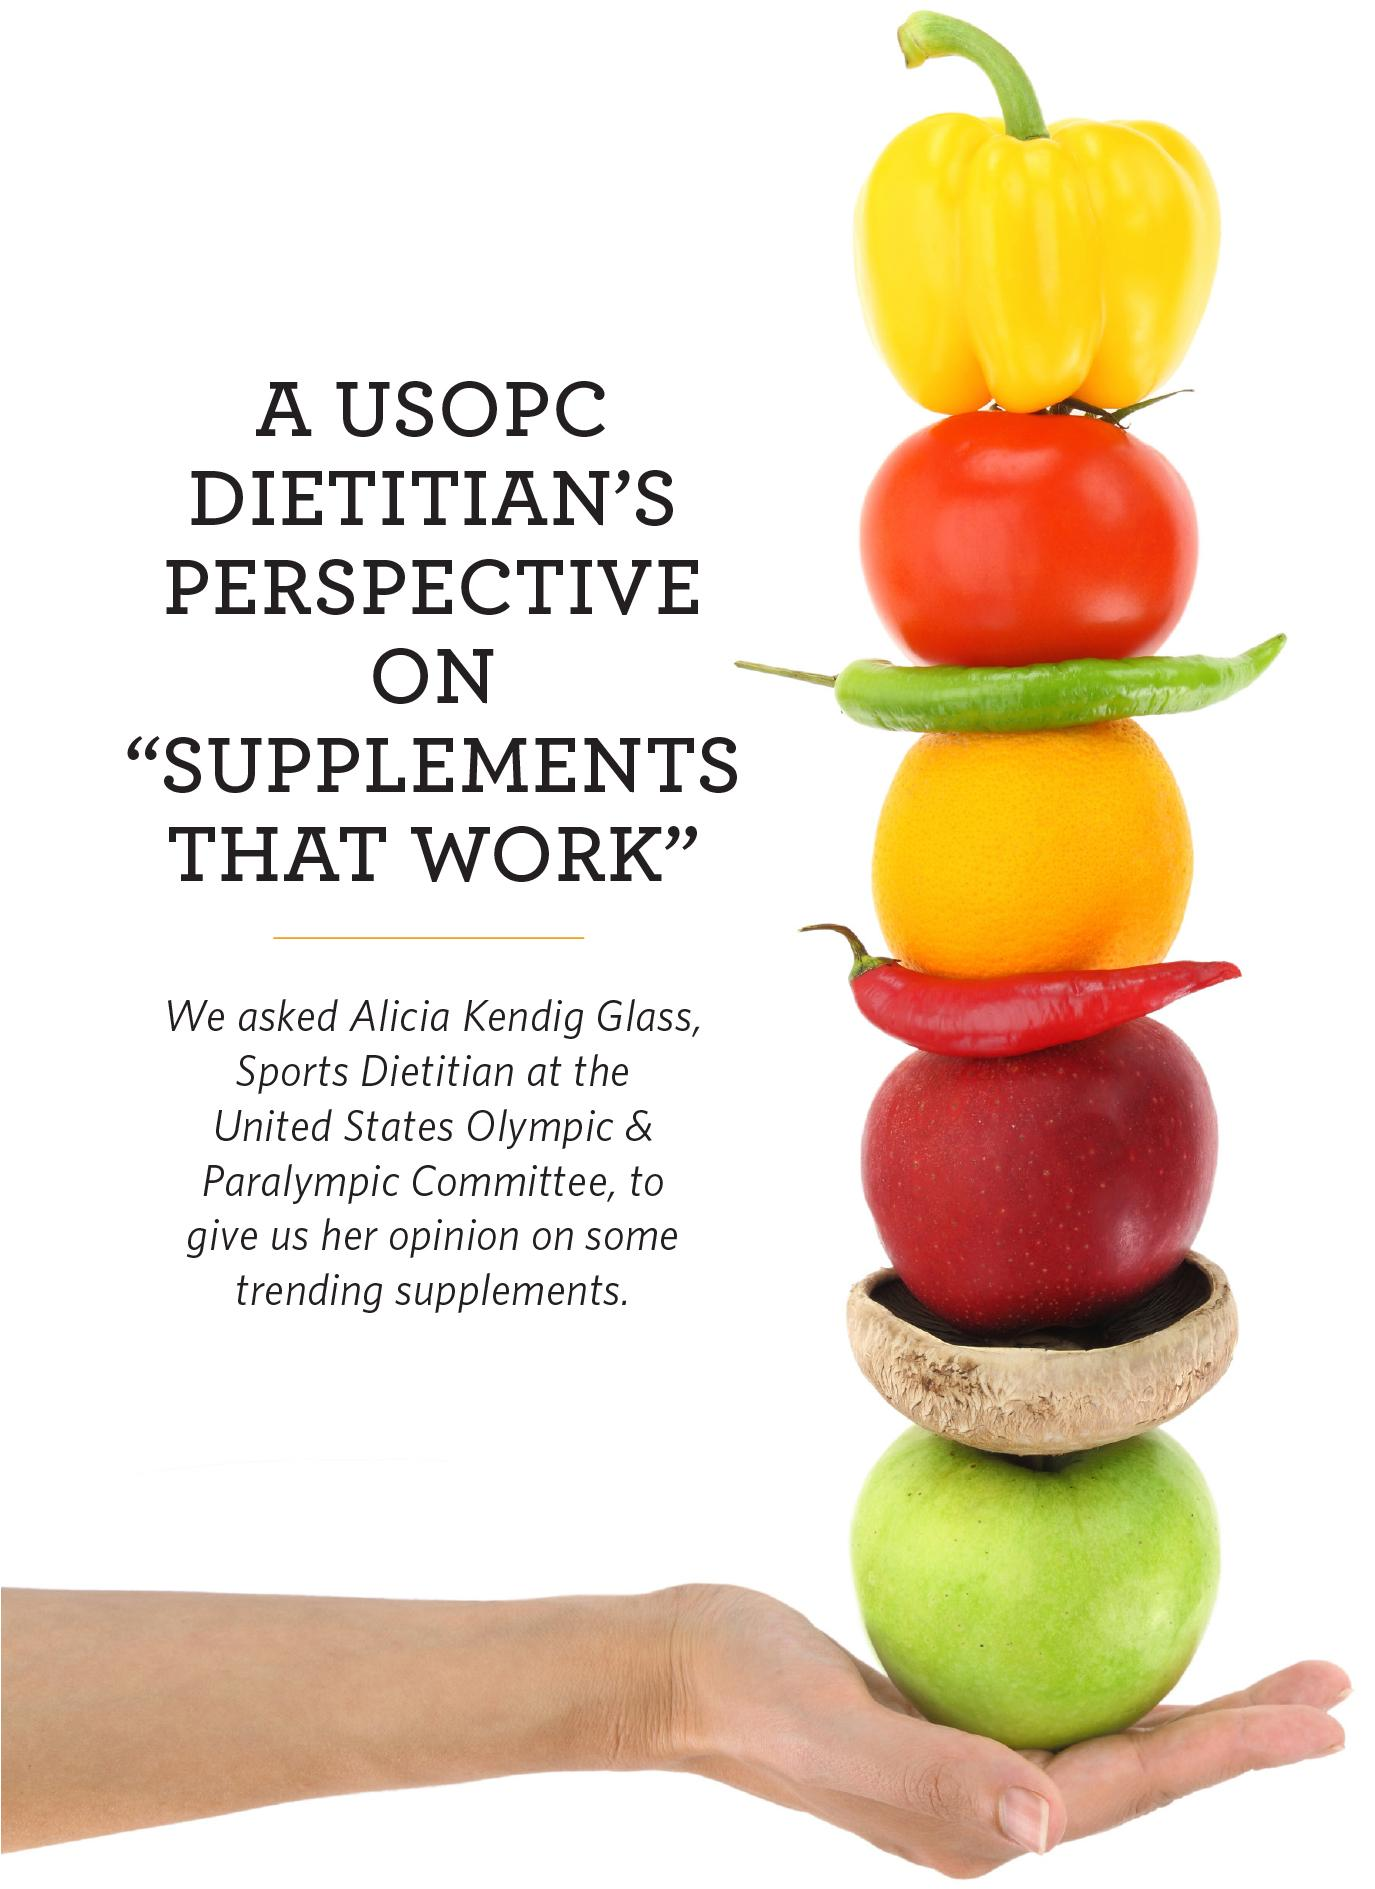 A USOPC Dietitian's perspective on supplements that work.